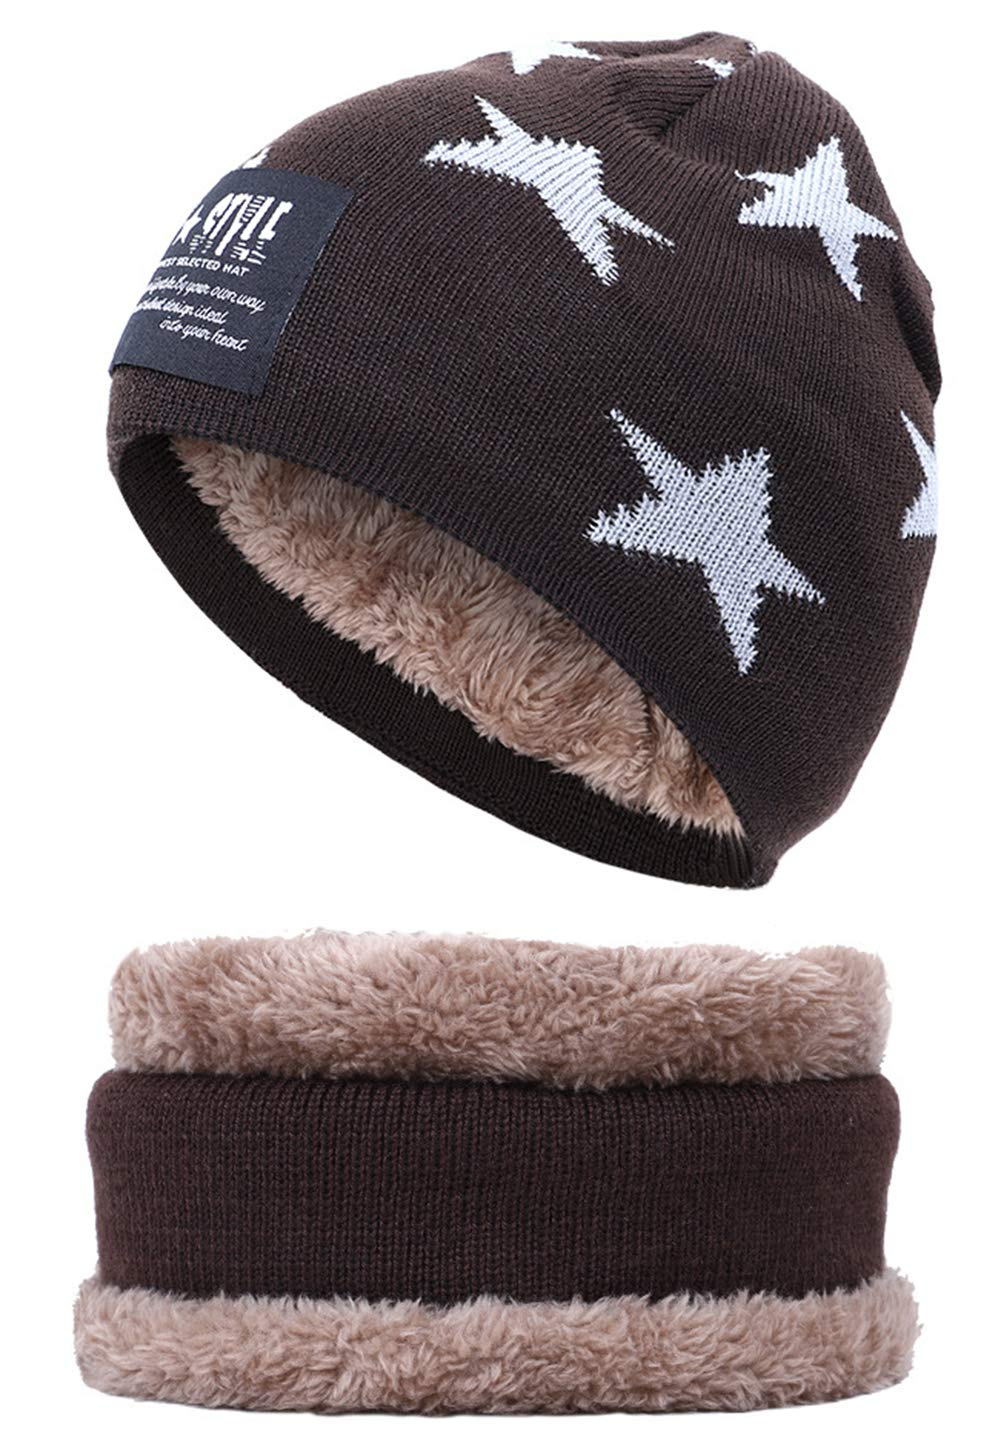 iKulilky Unisex Scarf Gray Knitted Hat,Boys and Girls Beanie Hat Bobble Hat Baby Cap Neck Warmer Kids Scarves Loop Scarves Neck Warmer for Autumn Winter Motorcycle